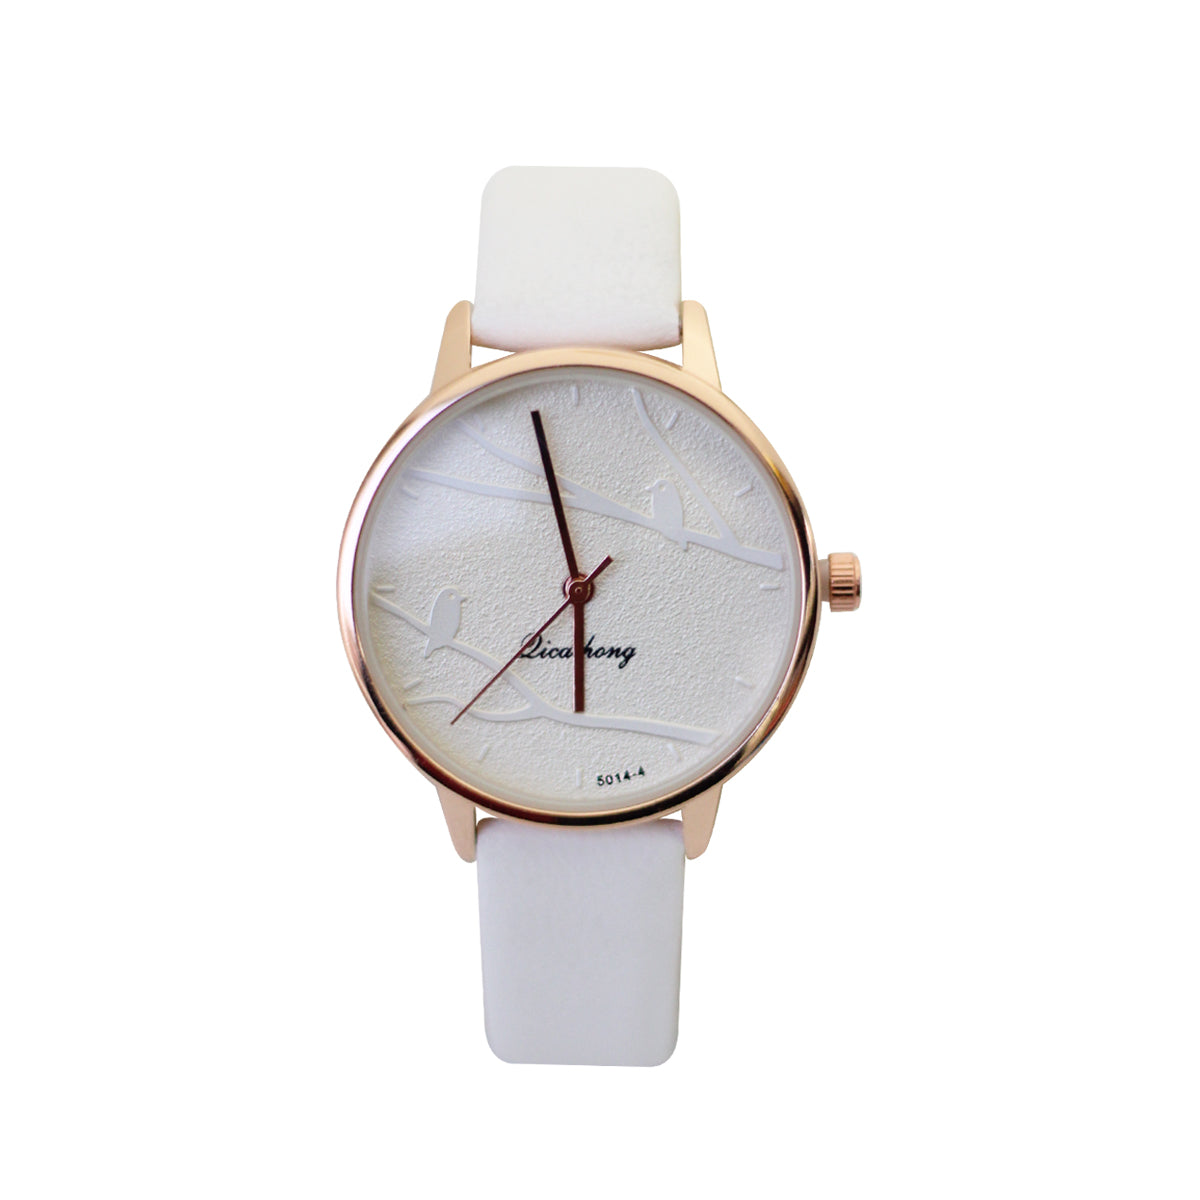 Licaihong Casual Analog Leather Watch For Women - White